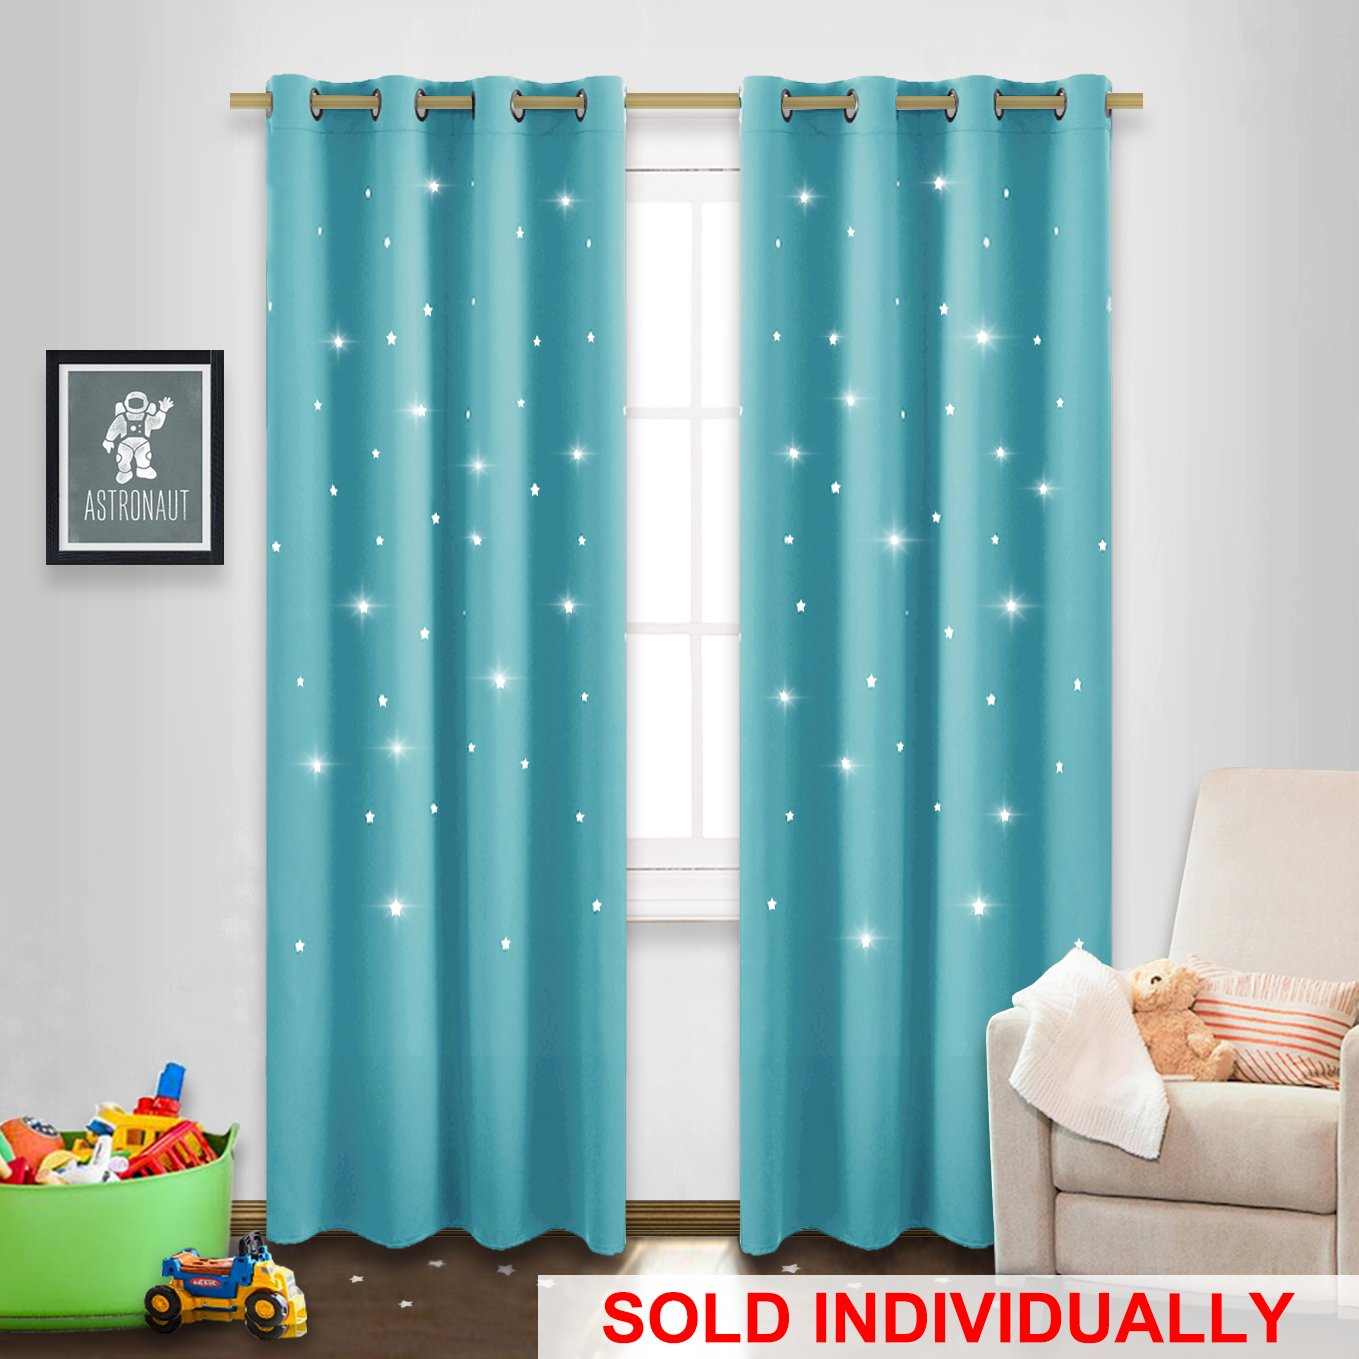 Star Cut Out Curtain Panel - NICETOWN 52 by 84 Inch Blackout Drape with Star Cutouts